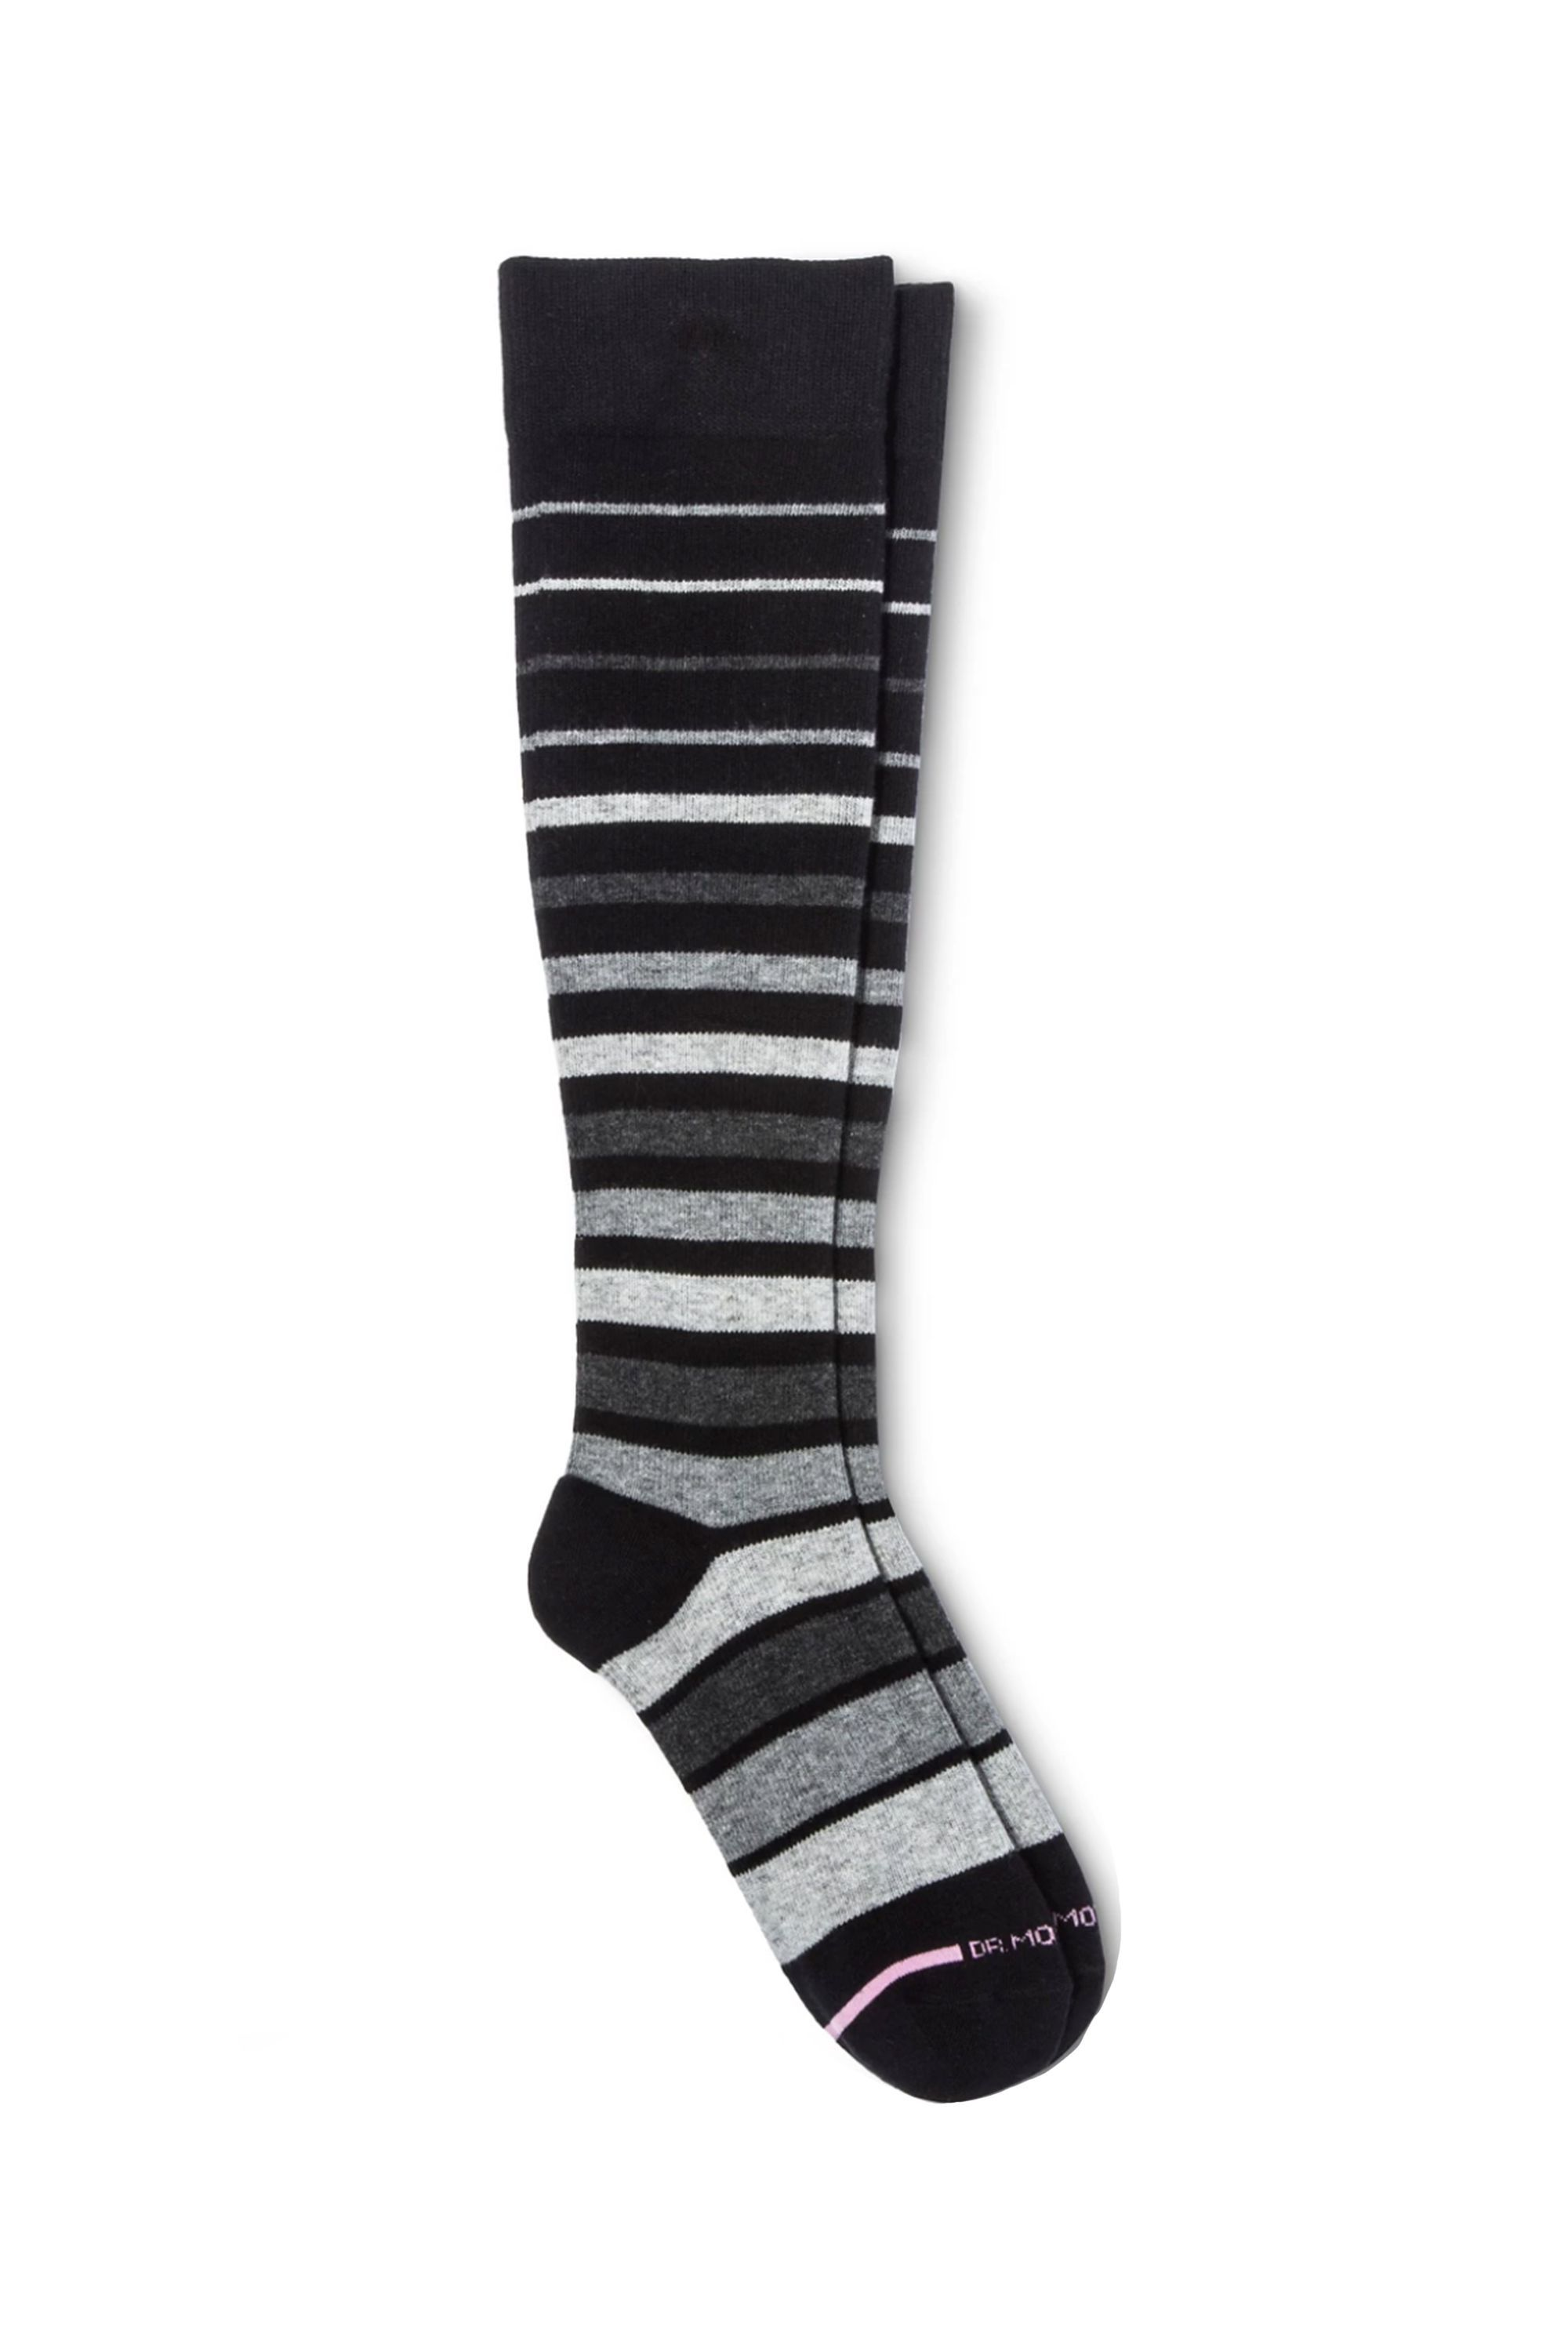 Striped Compression Knee-High Socks Dr. Motion target.com $7.99 SHOP NOW Compression socks give them the support they didn't know they needed. Their calves will thank you.